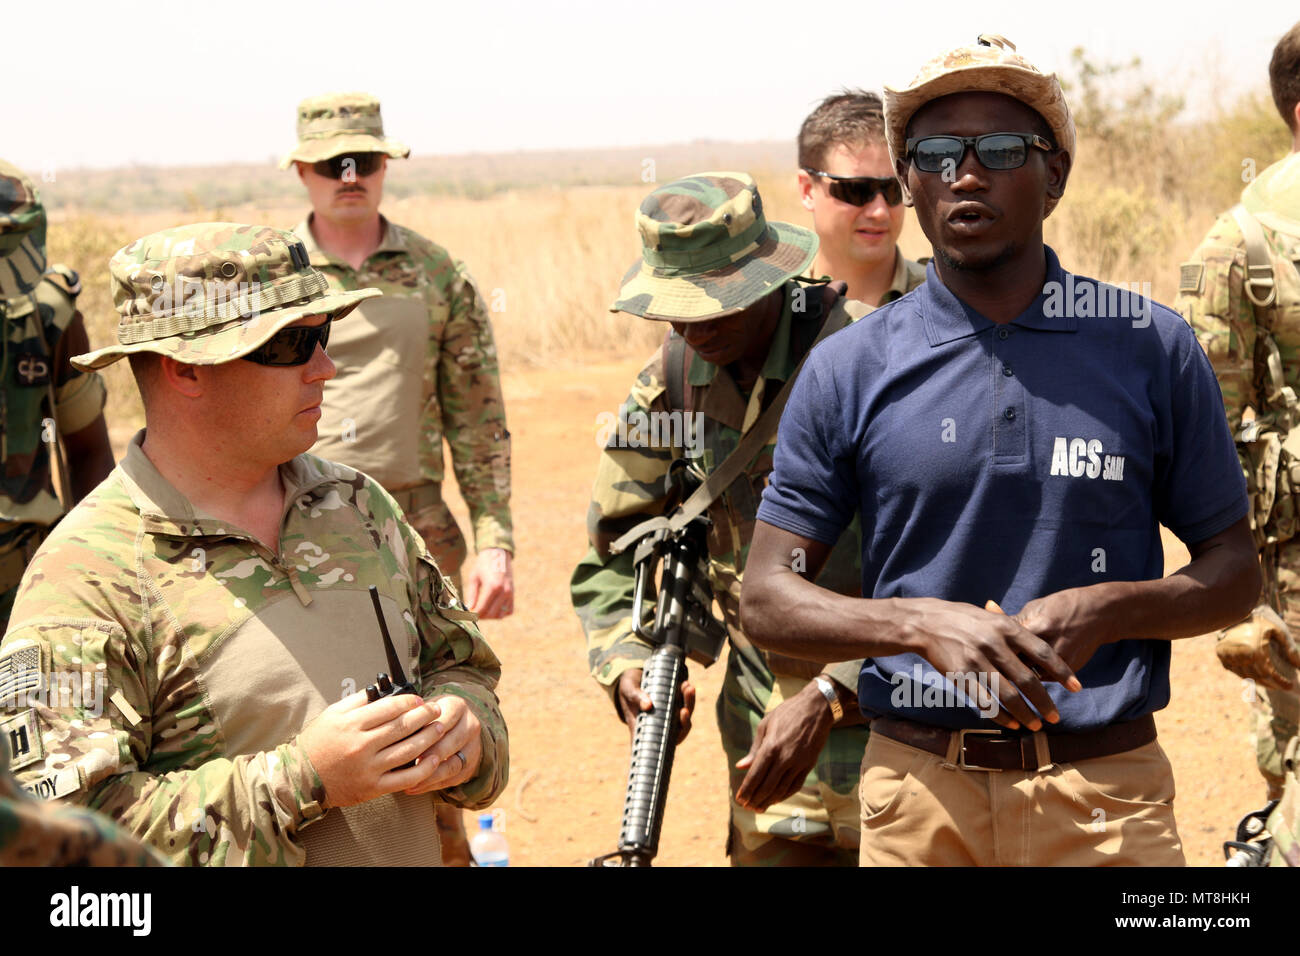 Birame Faye, an Interpreter for the Senegalese Army is responsilble for translating French to English and English to French between Soldiers of 3rd Squadron, 71st Cavalry Regiment, 10th Mountain Division and the Senegalese Army. This is absolutely critical to a successful mission. 10th Mountain began training instructors of the Senegalese Army April 30, 2018 to better prepare them for leading their upcoming Advanced Infantry Training. (U.S. Army Photo by Staff Sgt. Brandon Ames) - Stock Image